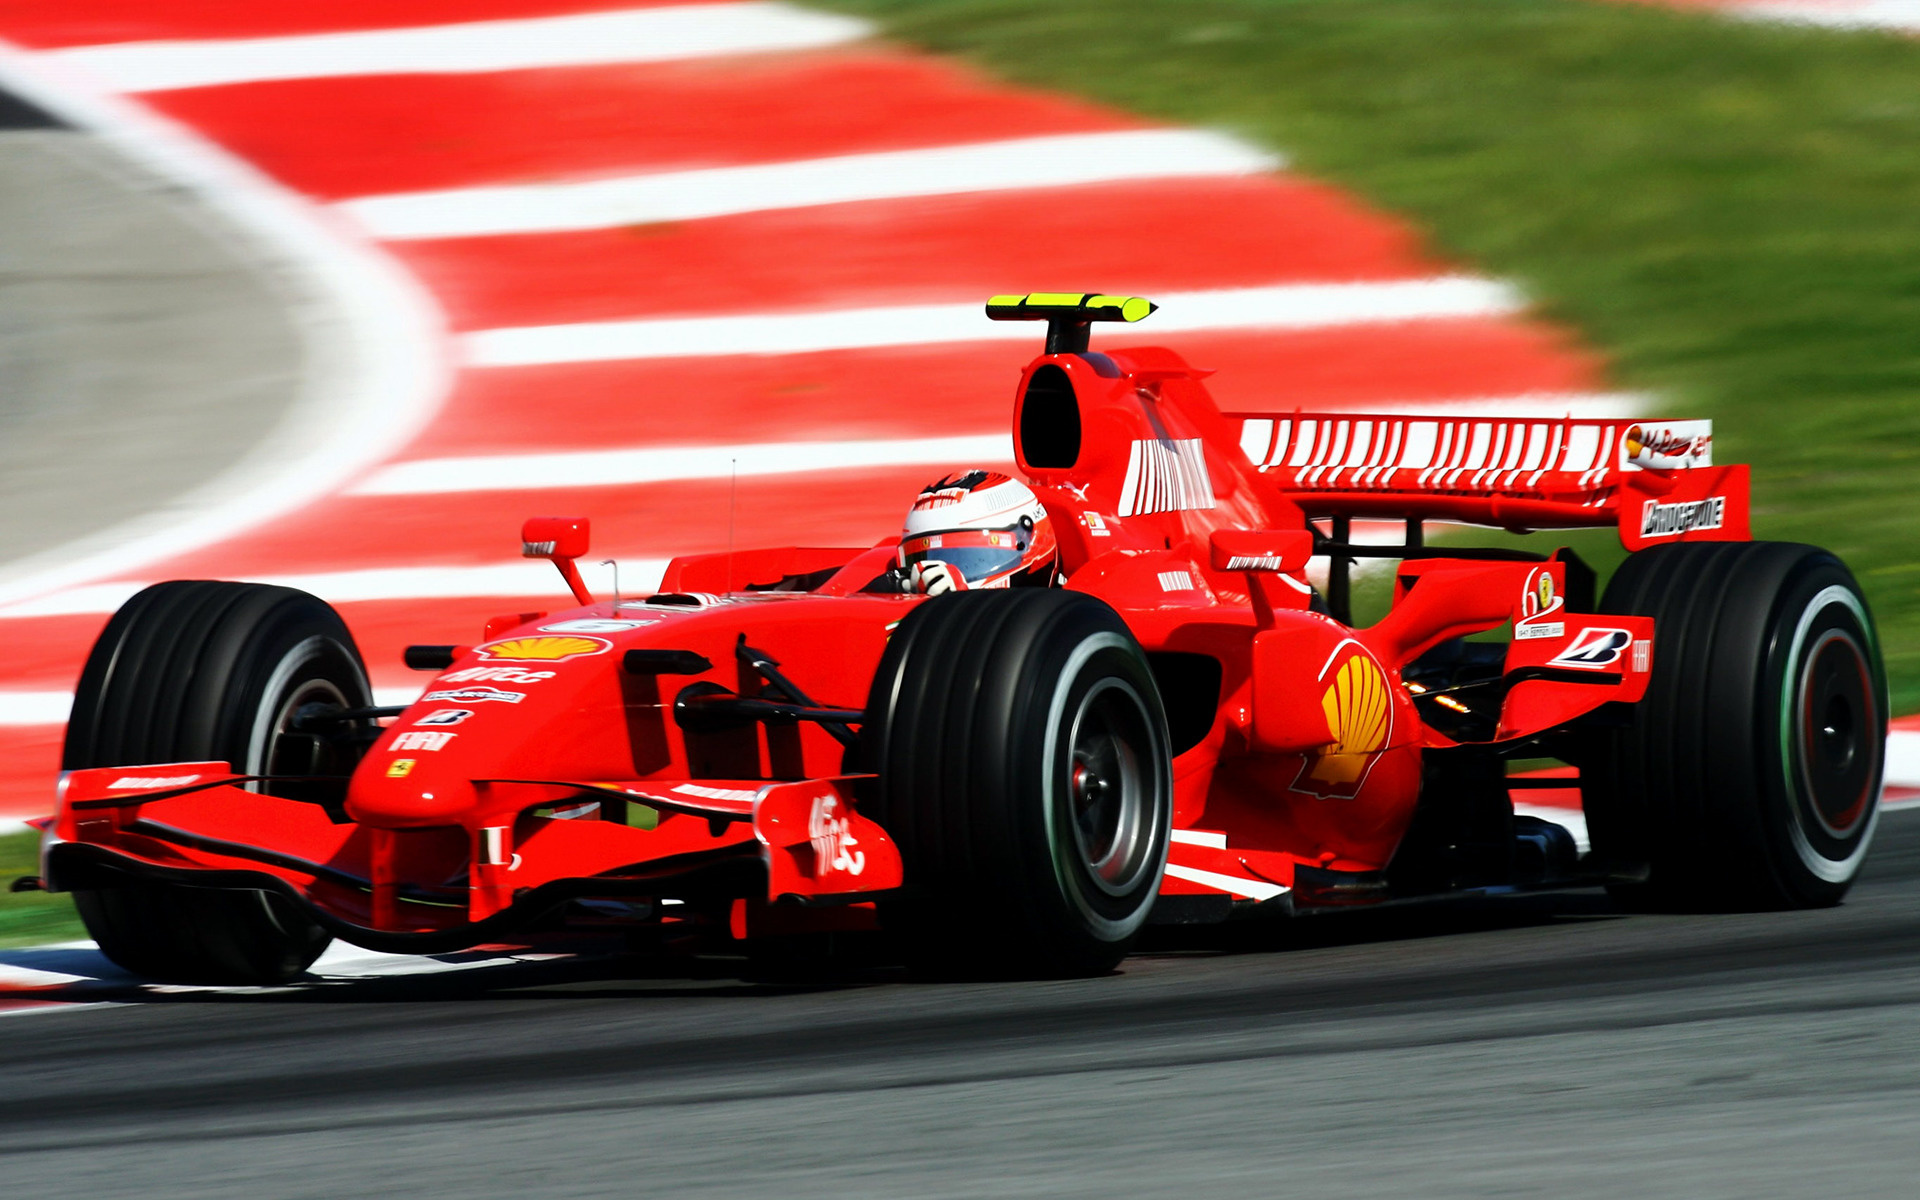 2007 Ferrari F2007 Wallpapers And Hd Images Car Pixel